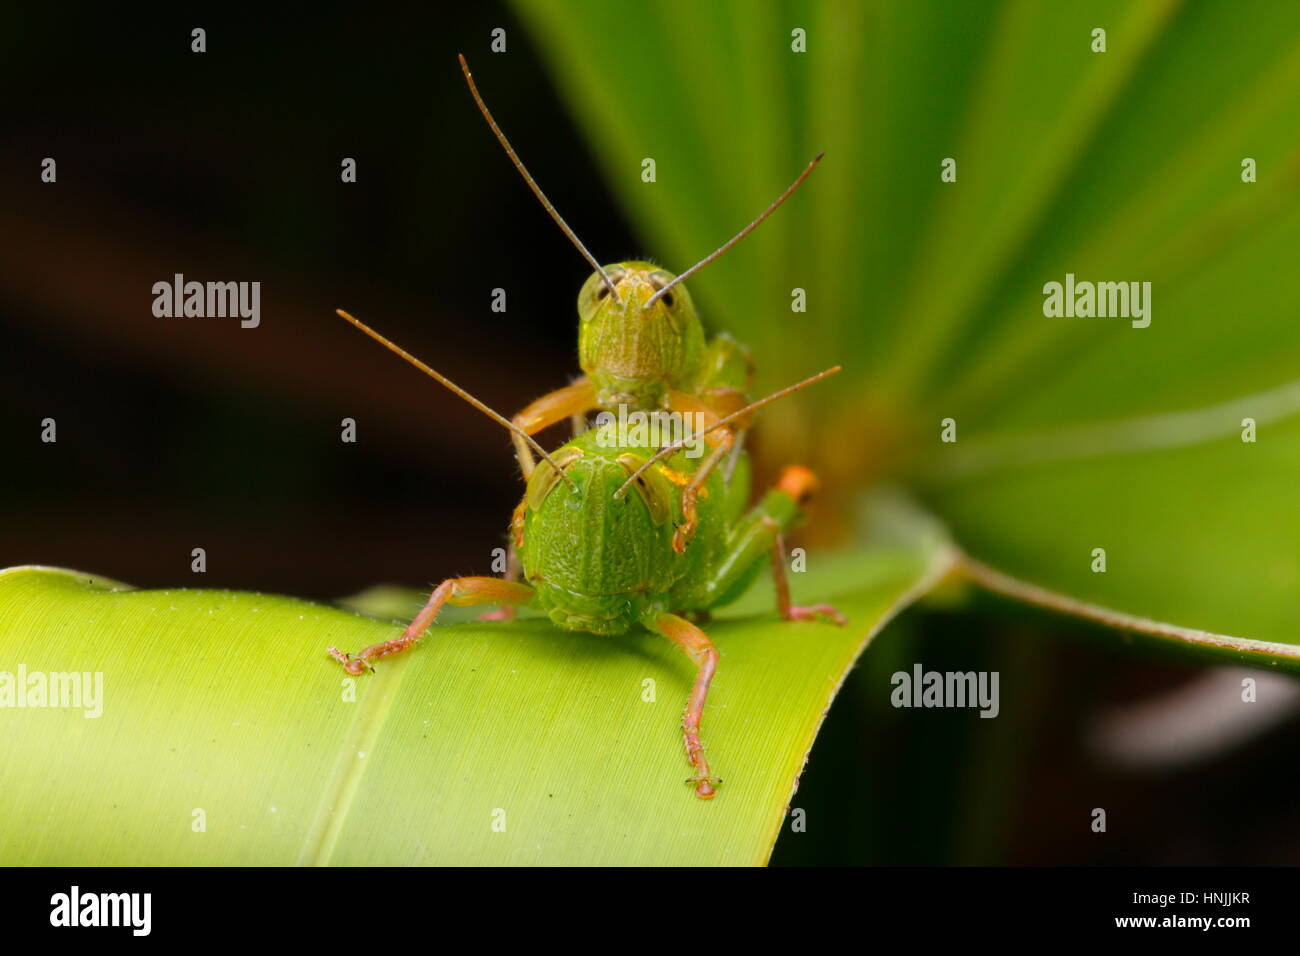 A pair of wingless grasshoppers, Aptenopedes aptera, courting on a palm frond. - Stock Image